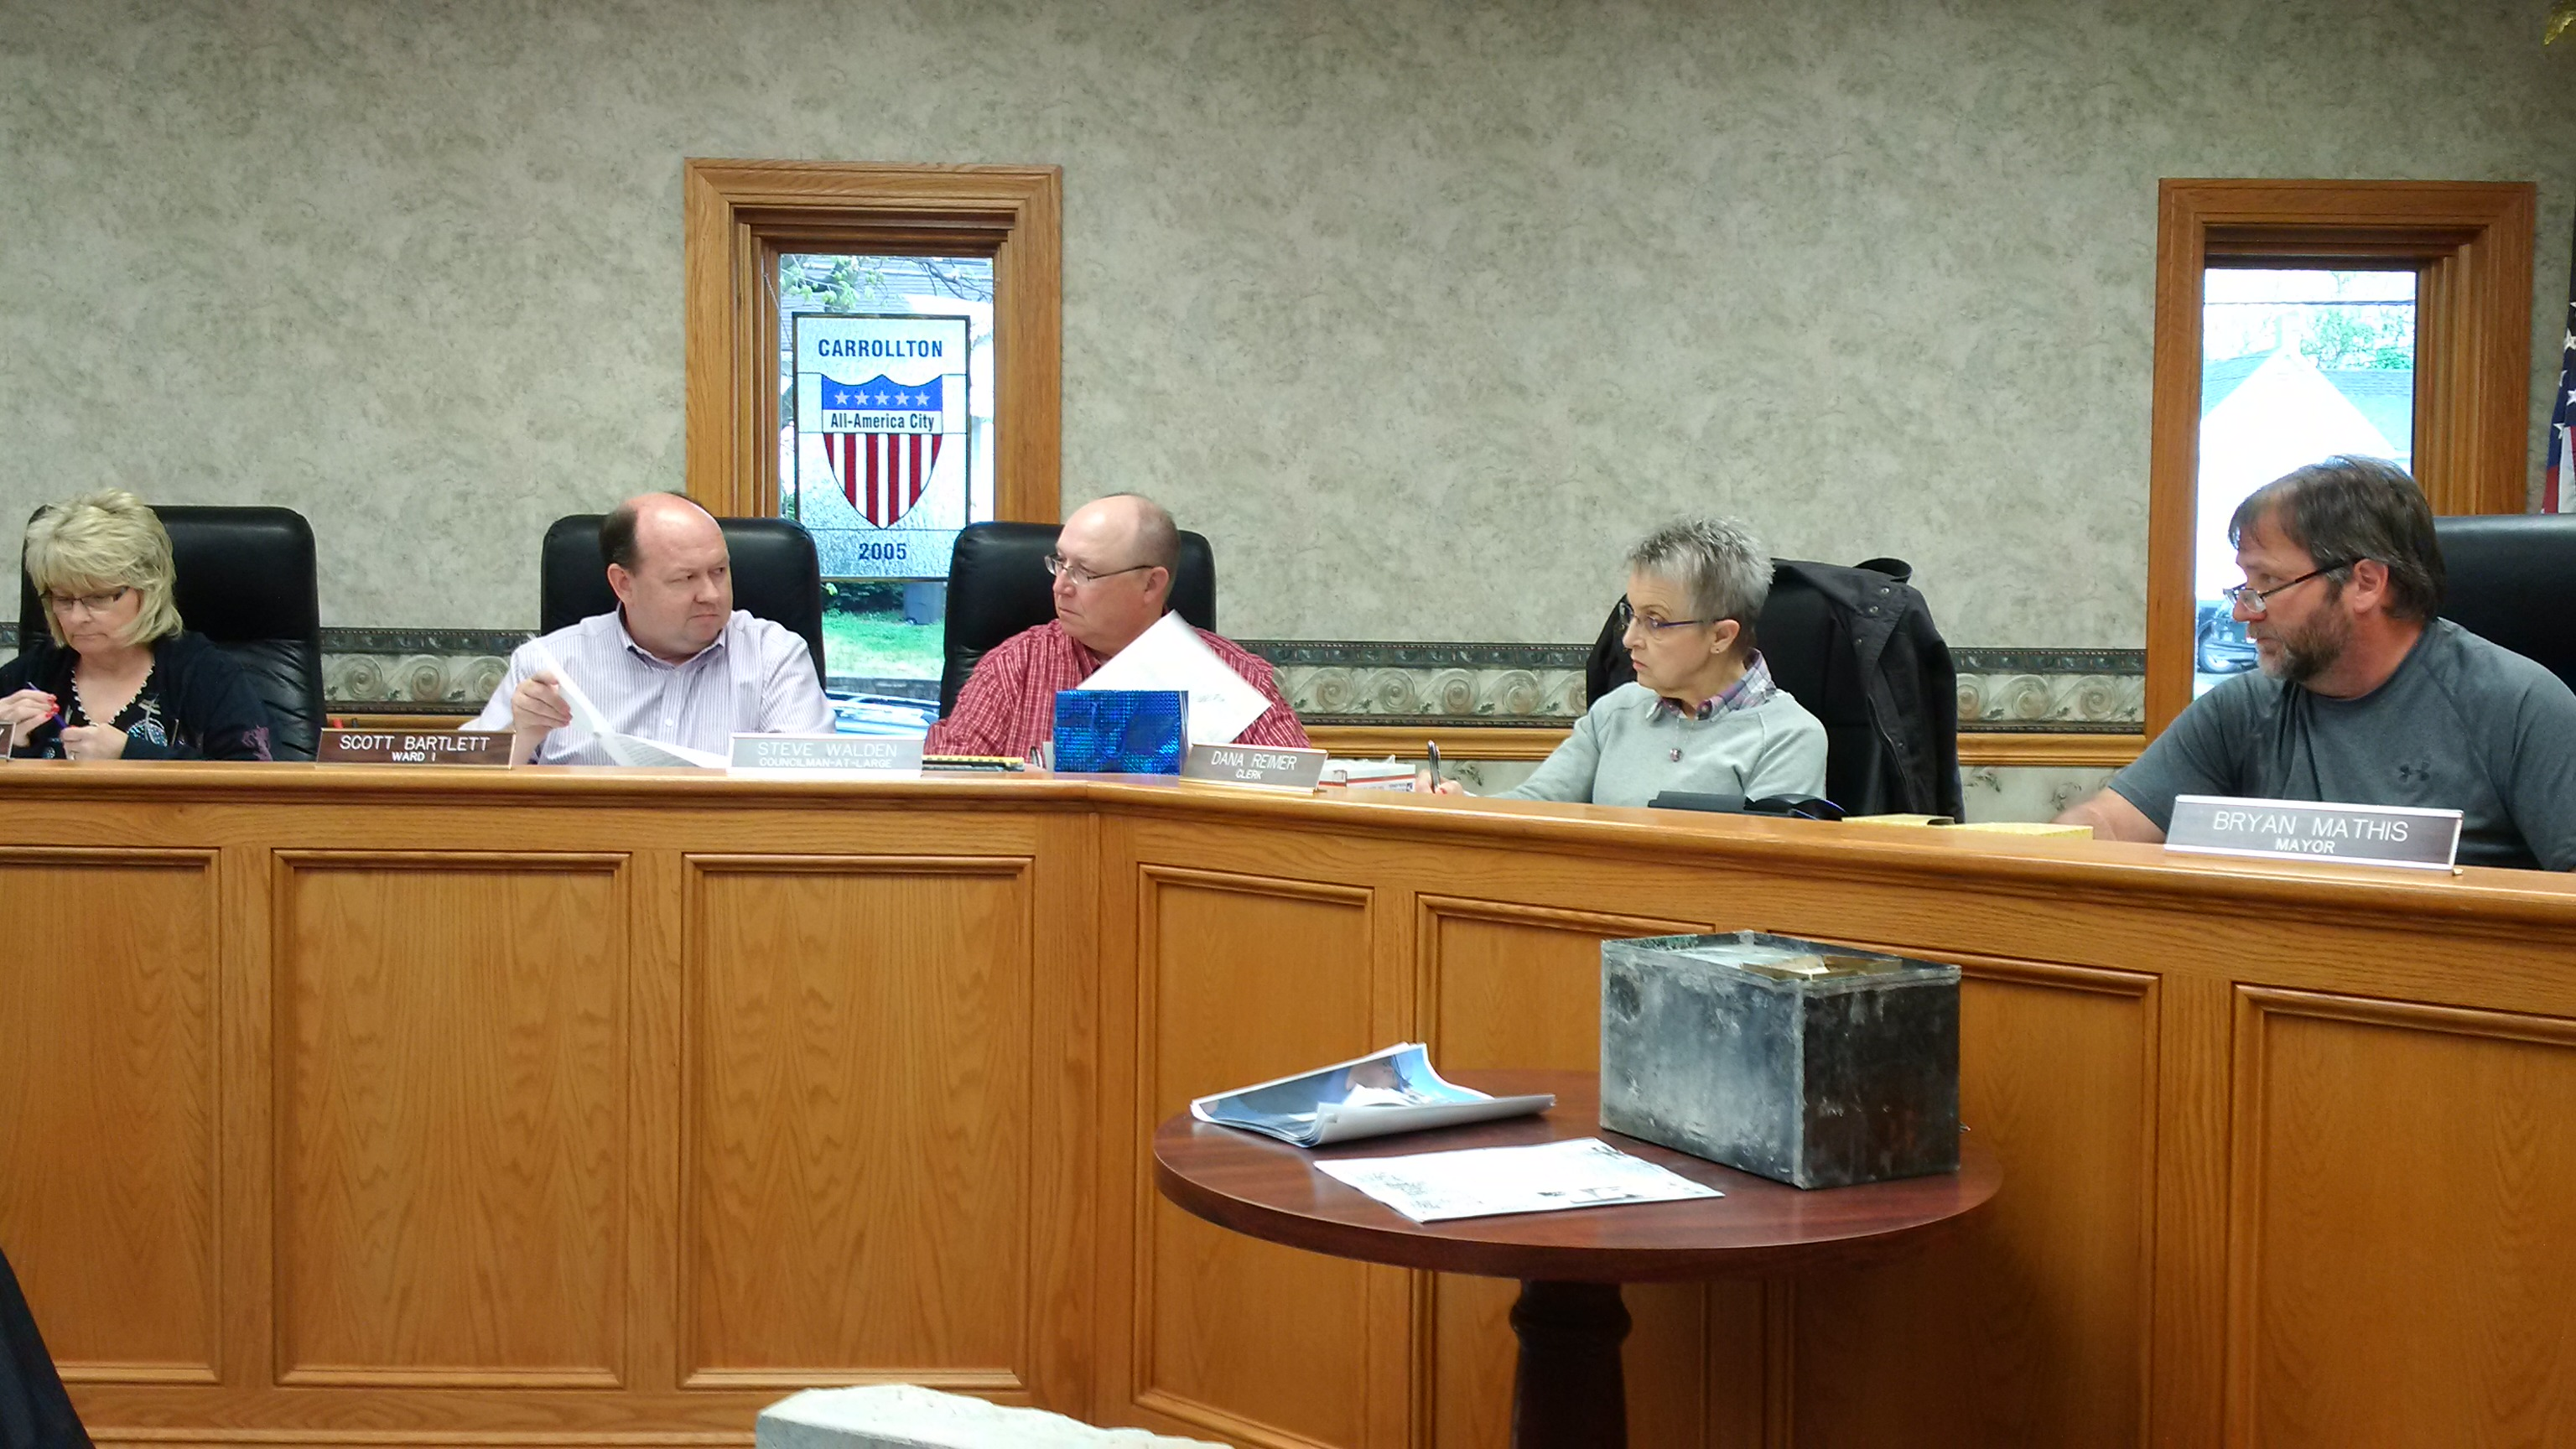 Carrollton City Council holds regular session and time capsule unsealing